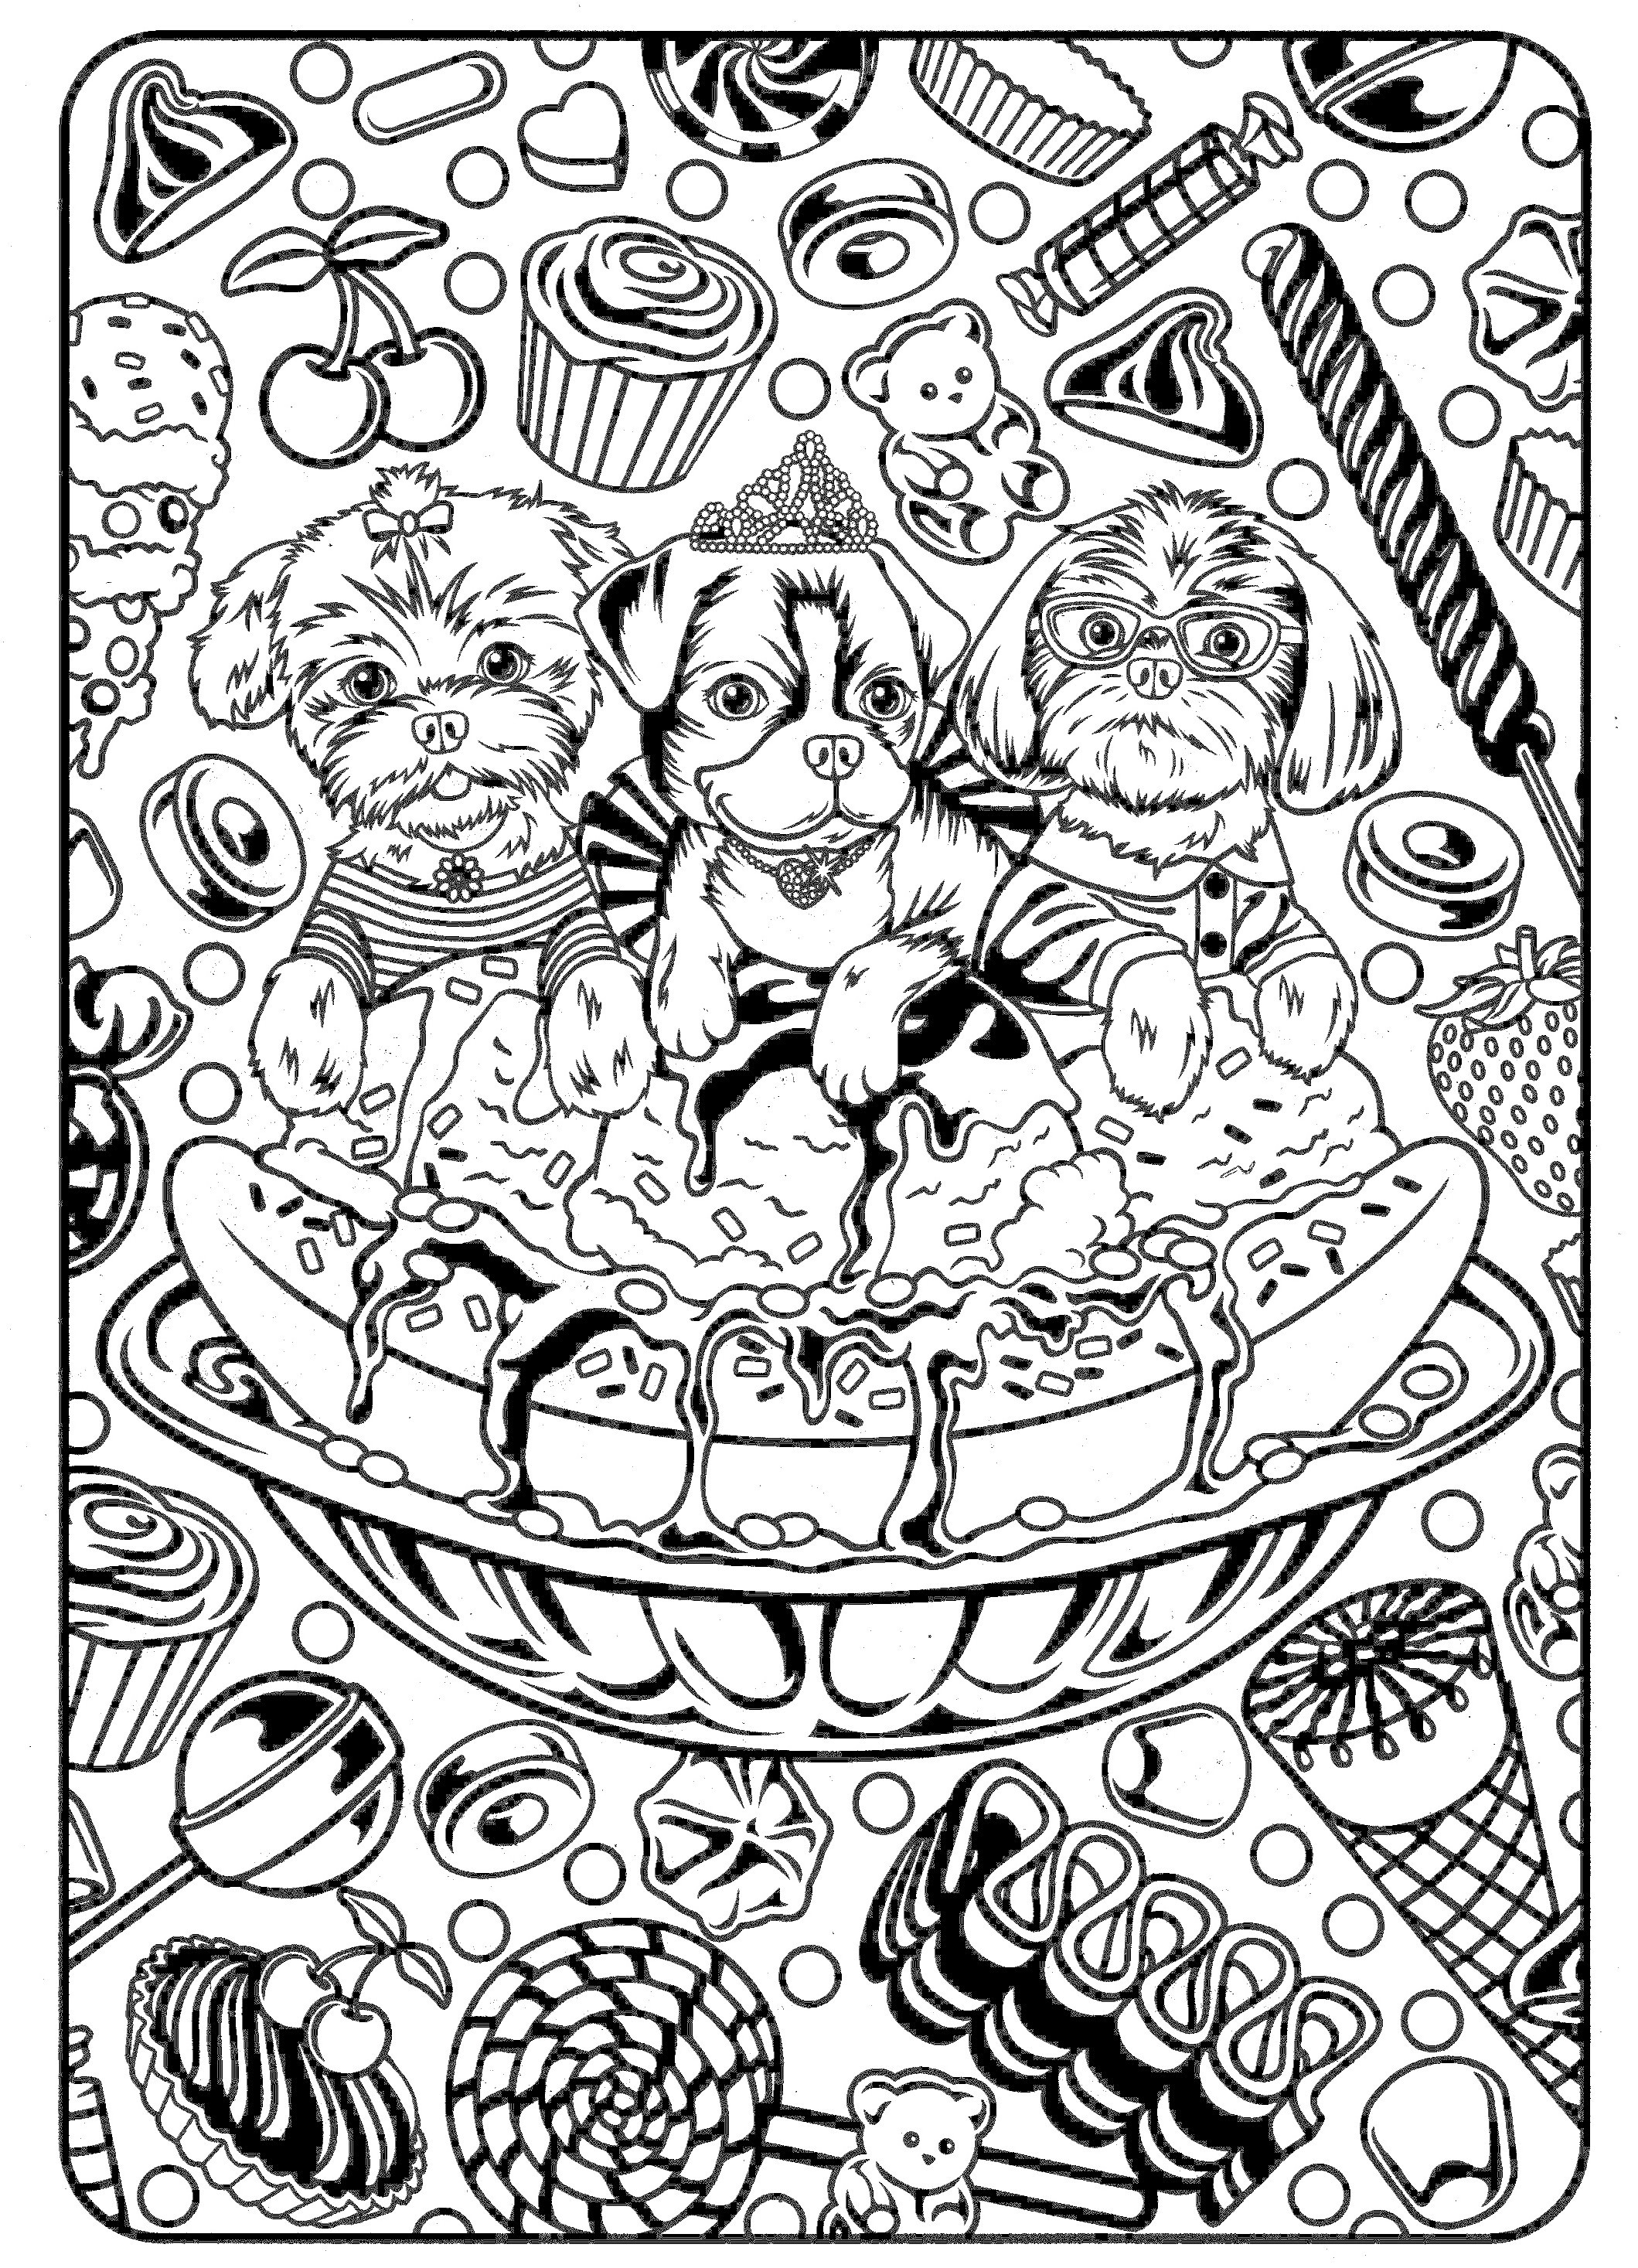 Cute Coloring Pages For Adults  Cute Coloring Pages Best Coloring Pages For Kids